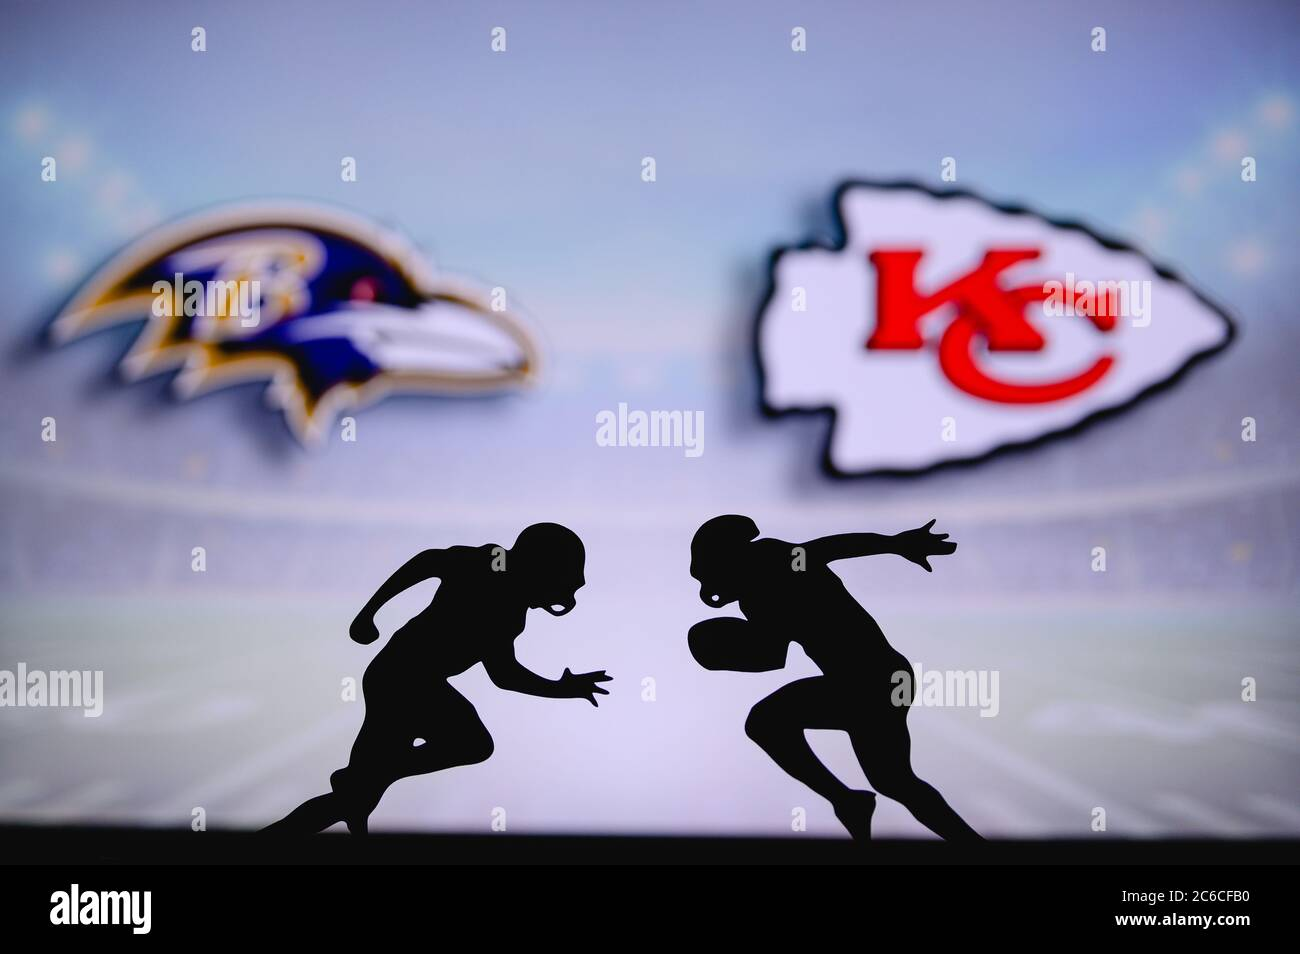 https www alamy com baltimore ravens vs kansas city chiefs nfl match poster two american football players silhouette facing each other on the field clubs logo in back image365381156 html